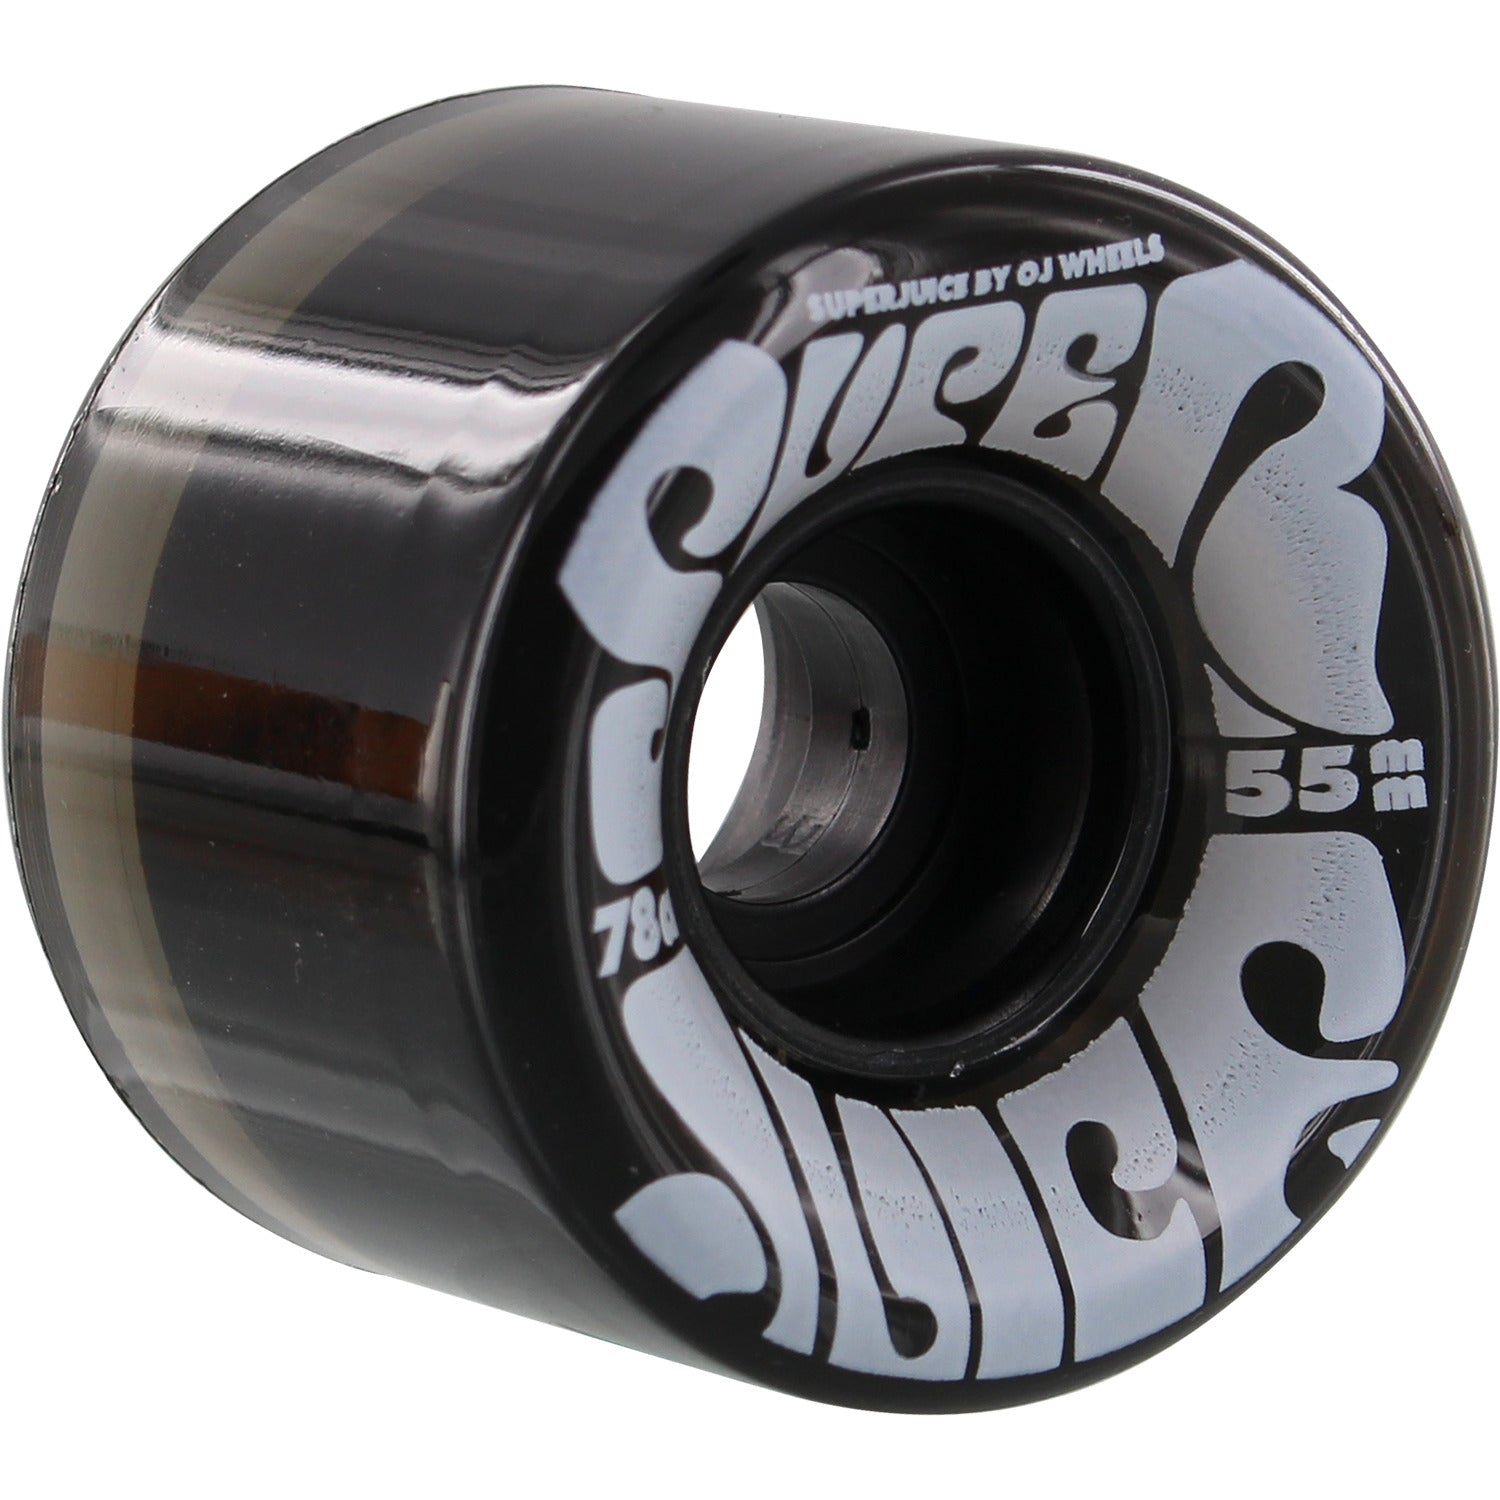 OJ Mini Super Juice Transblack 78a 55mm